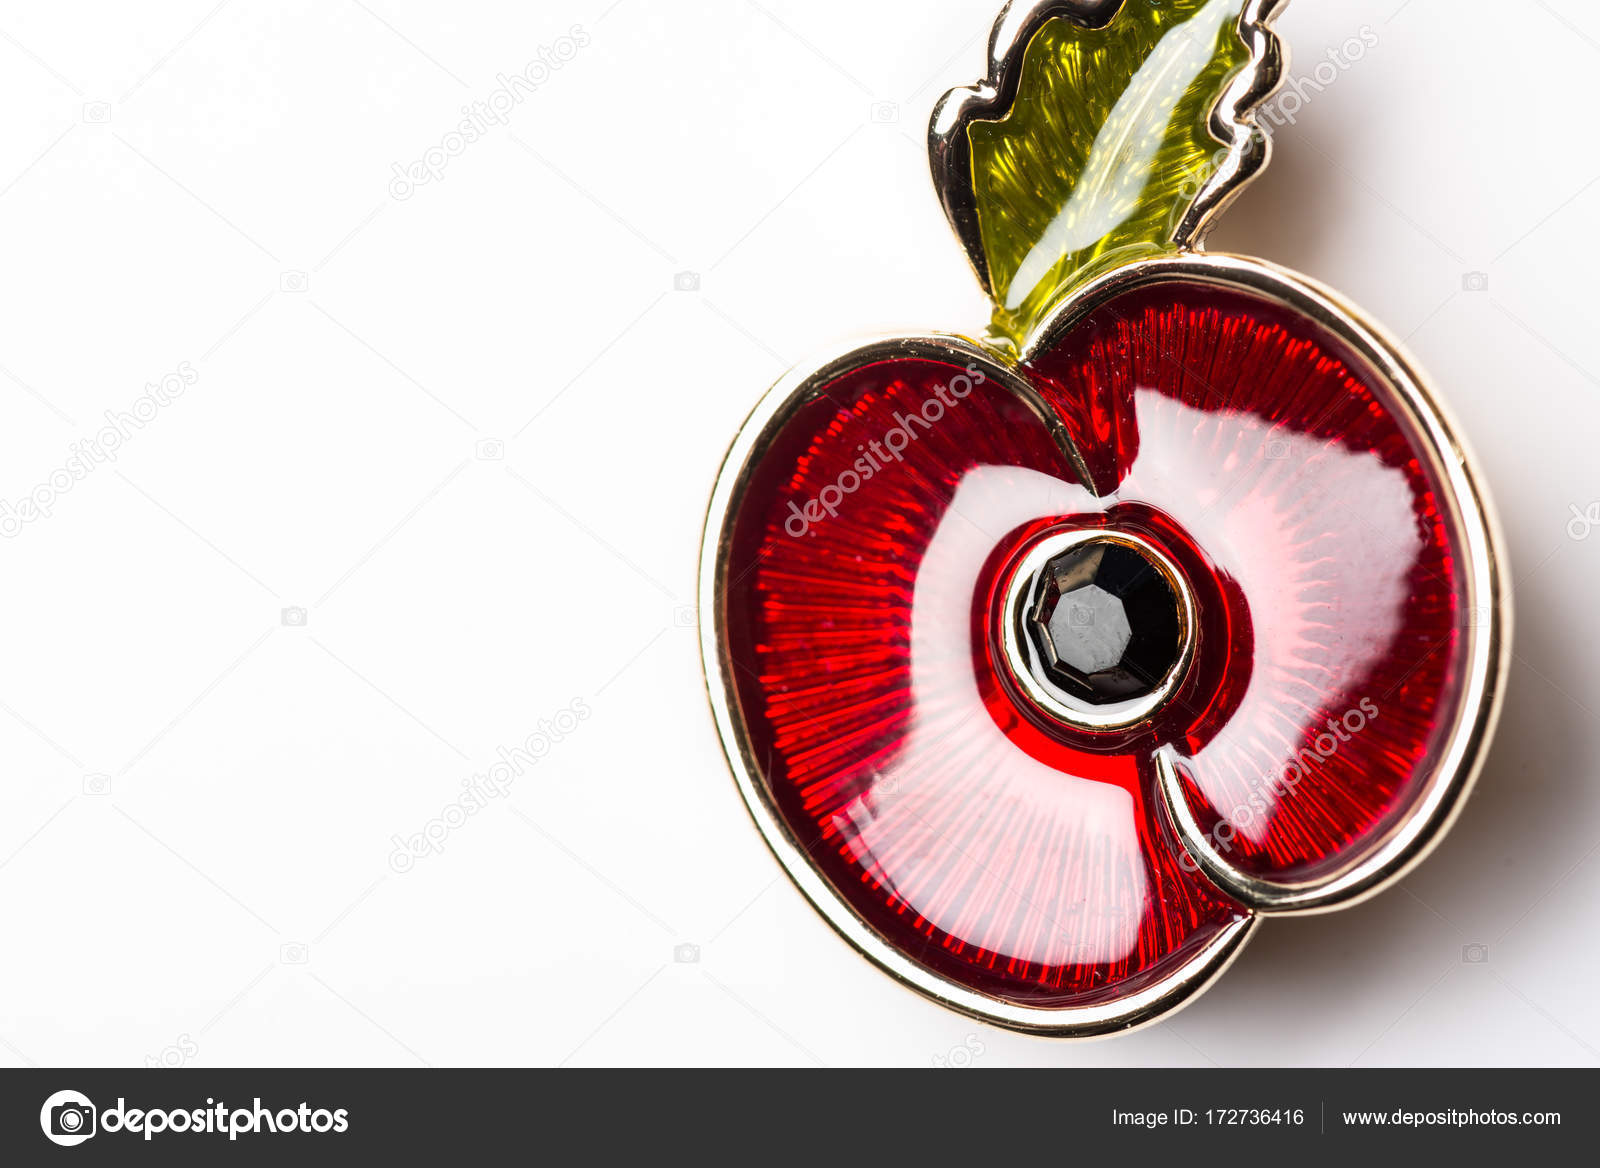 Red Poppy Pin As A Symbol Of Remembrance Day Stock Photo Manuta